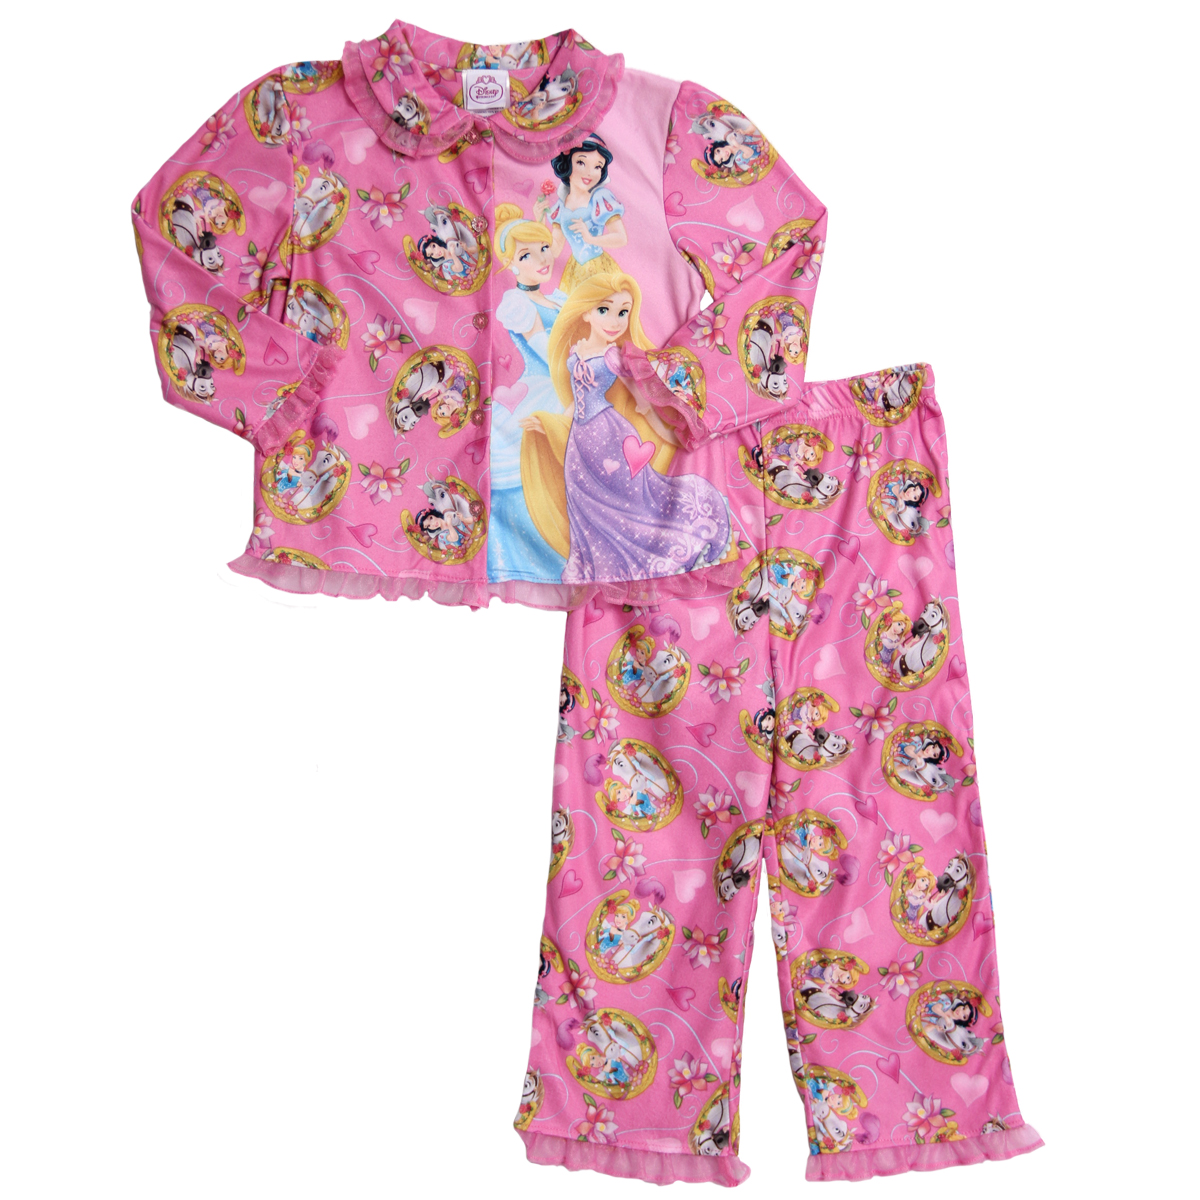 Disney Princess Little Girls' 2 Piece Pink Flannel Pajama Shirt Pants Set at Sears.com